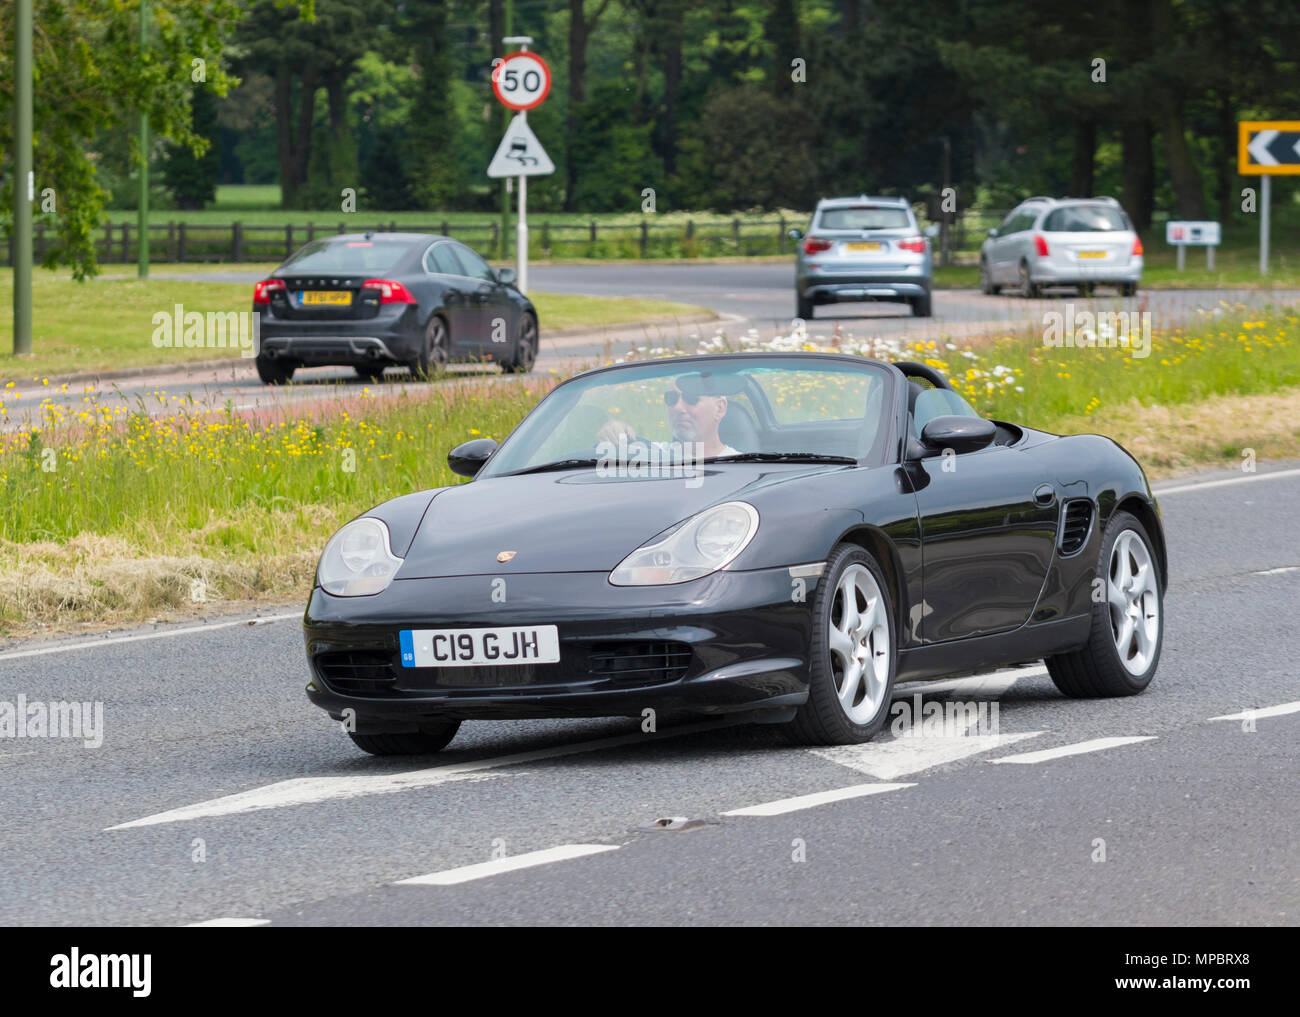 Black Porsche Boxter convertible sports car with the top down on a hot day in the UK. Porsche Boxter 2004 model. - Stock Image